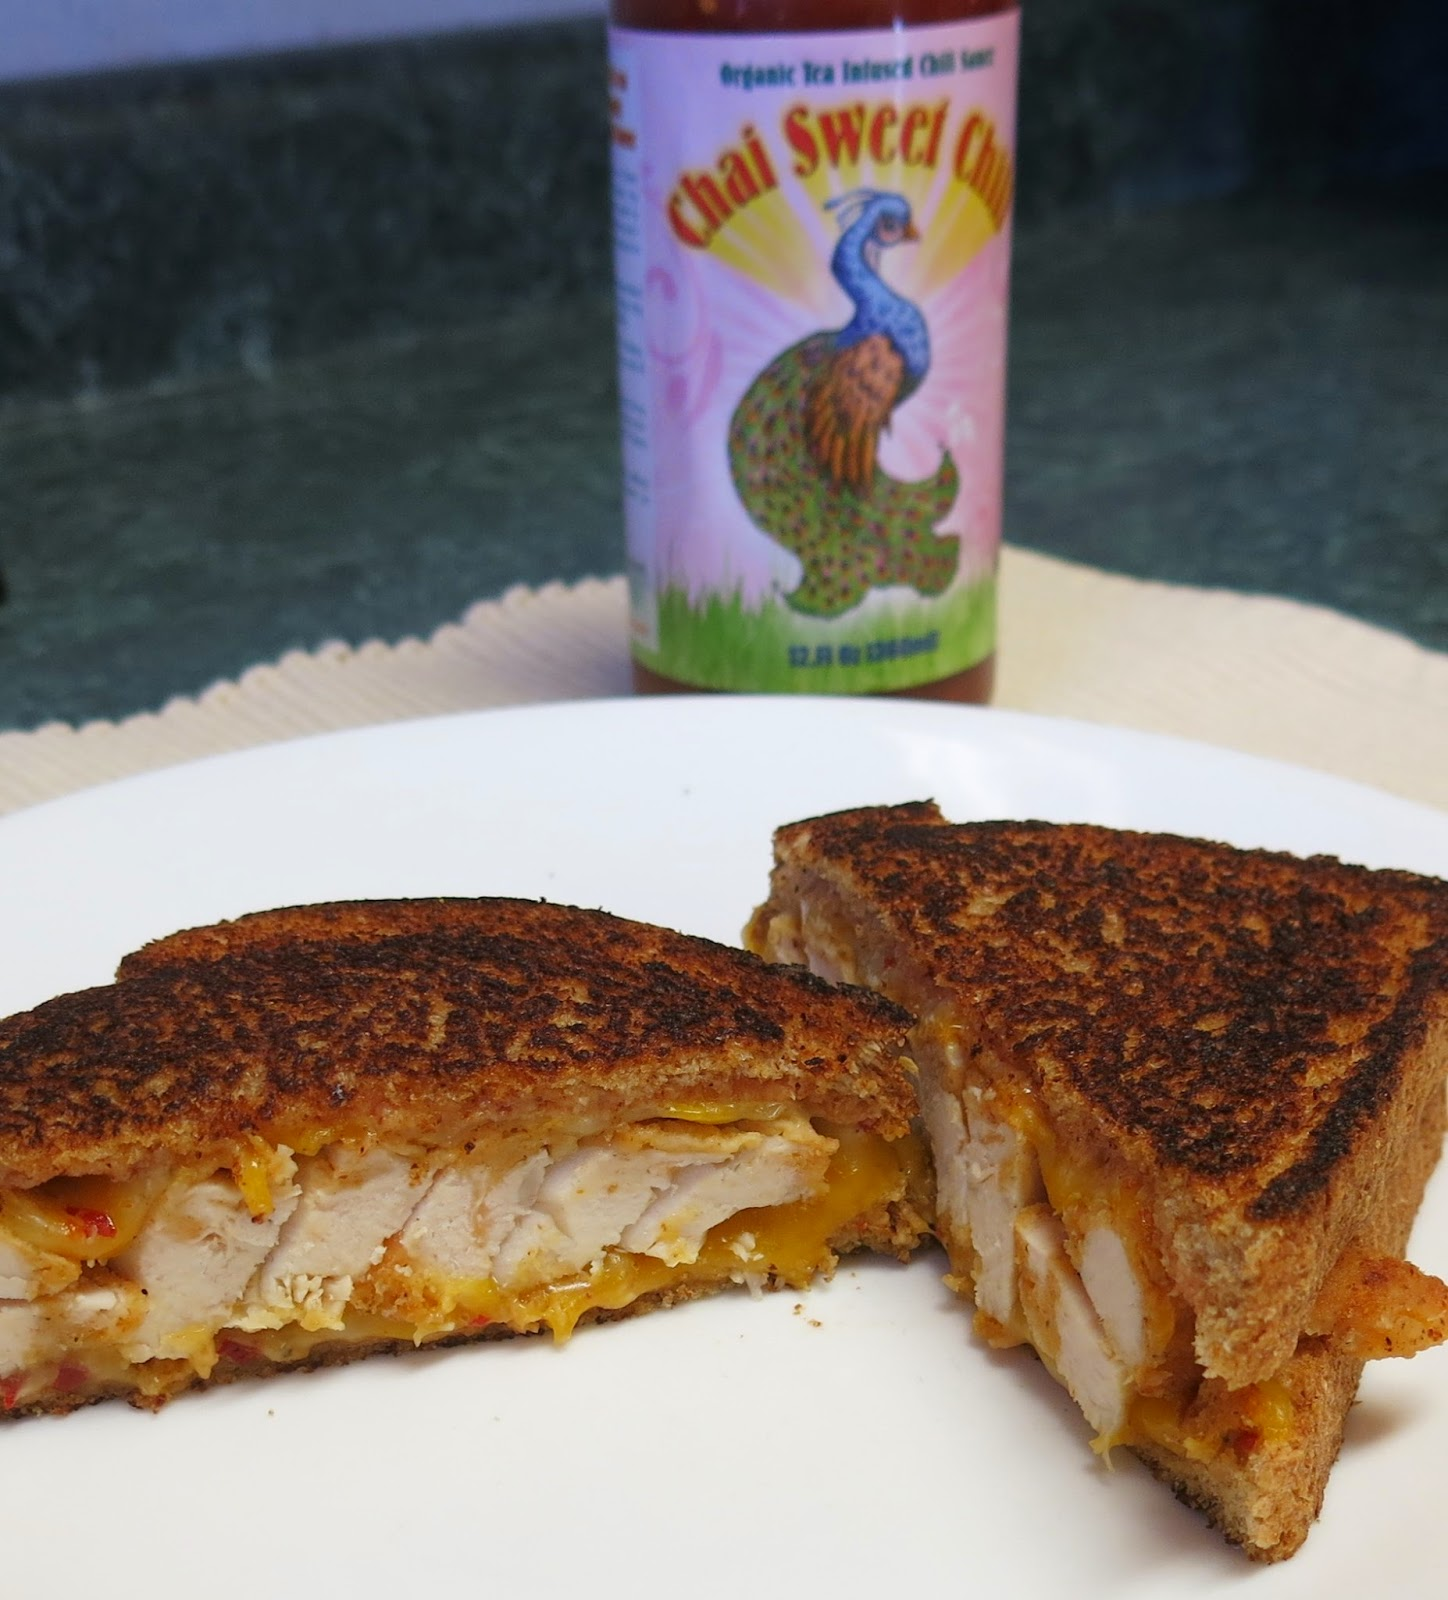 ... : Chai Sweet Chili Chicken Grilled Cheese Sandwich #TripleSBites